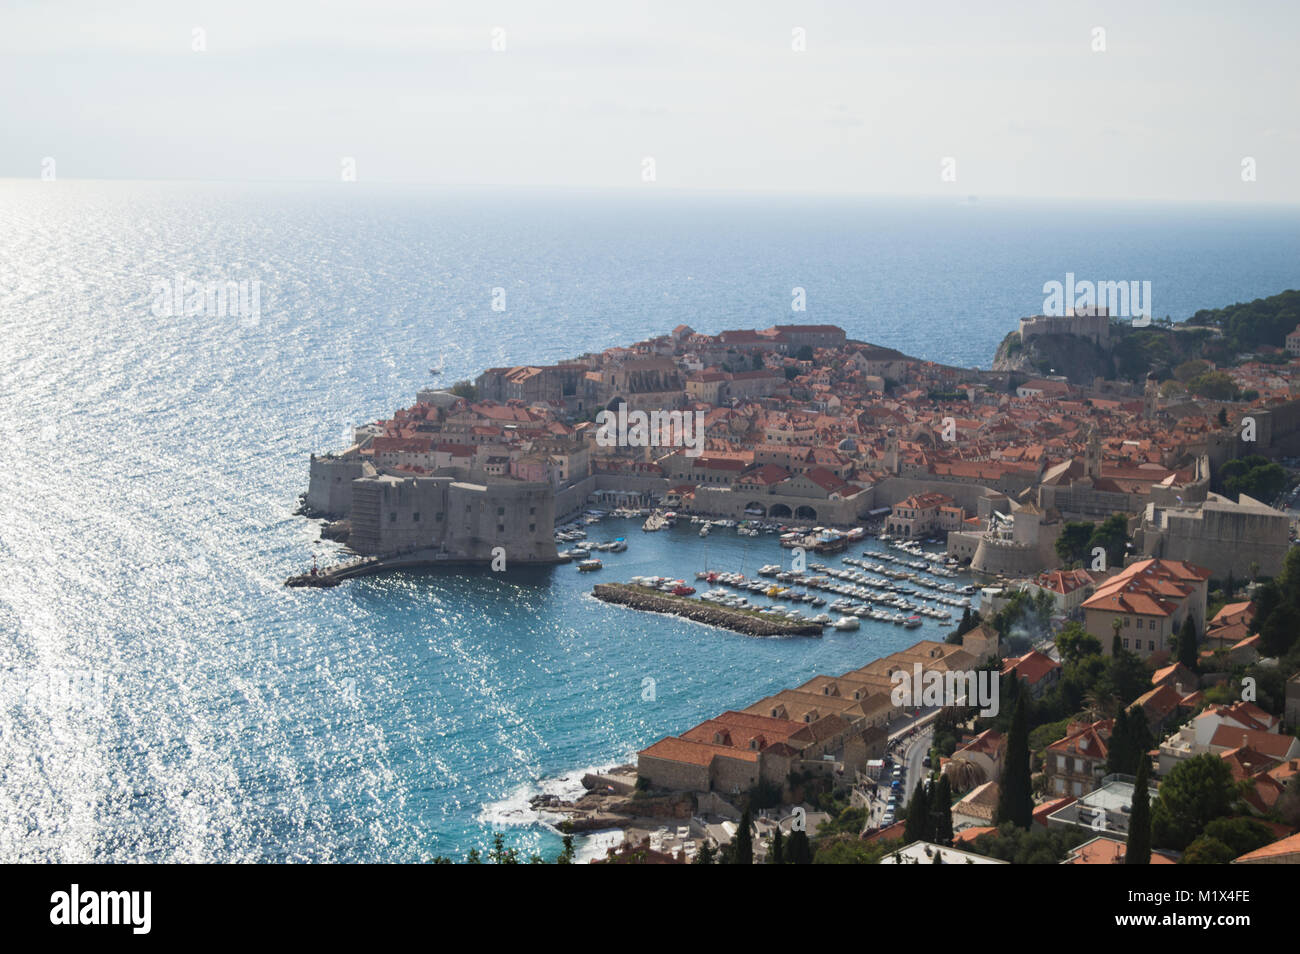 View onto Old Town of Dubrovnik with Harbor from Lookout Point, Croatia - Stock Image